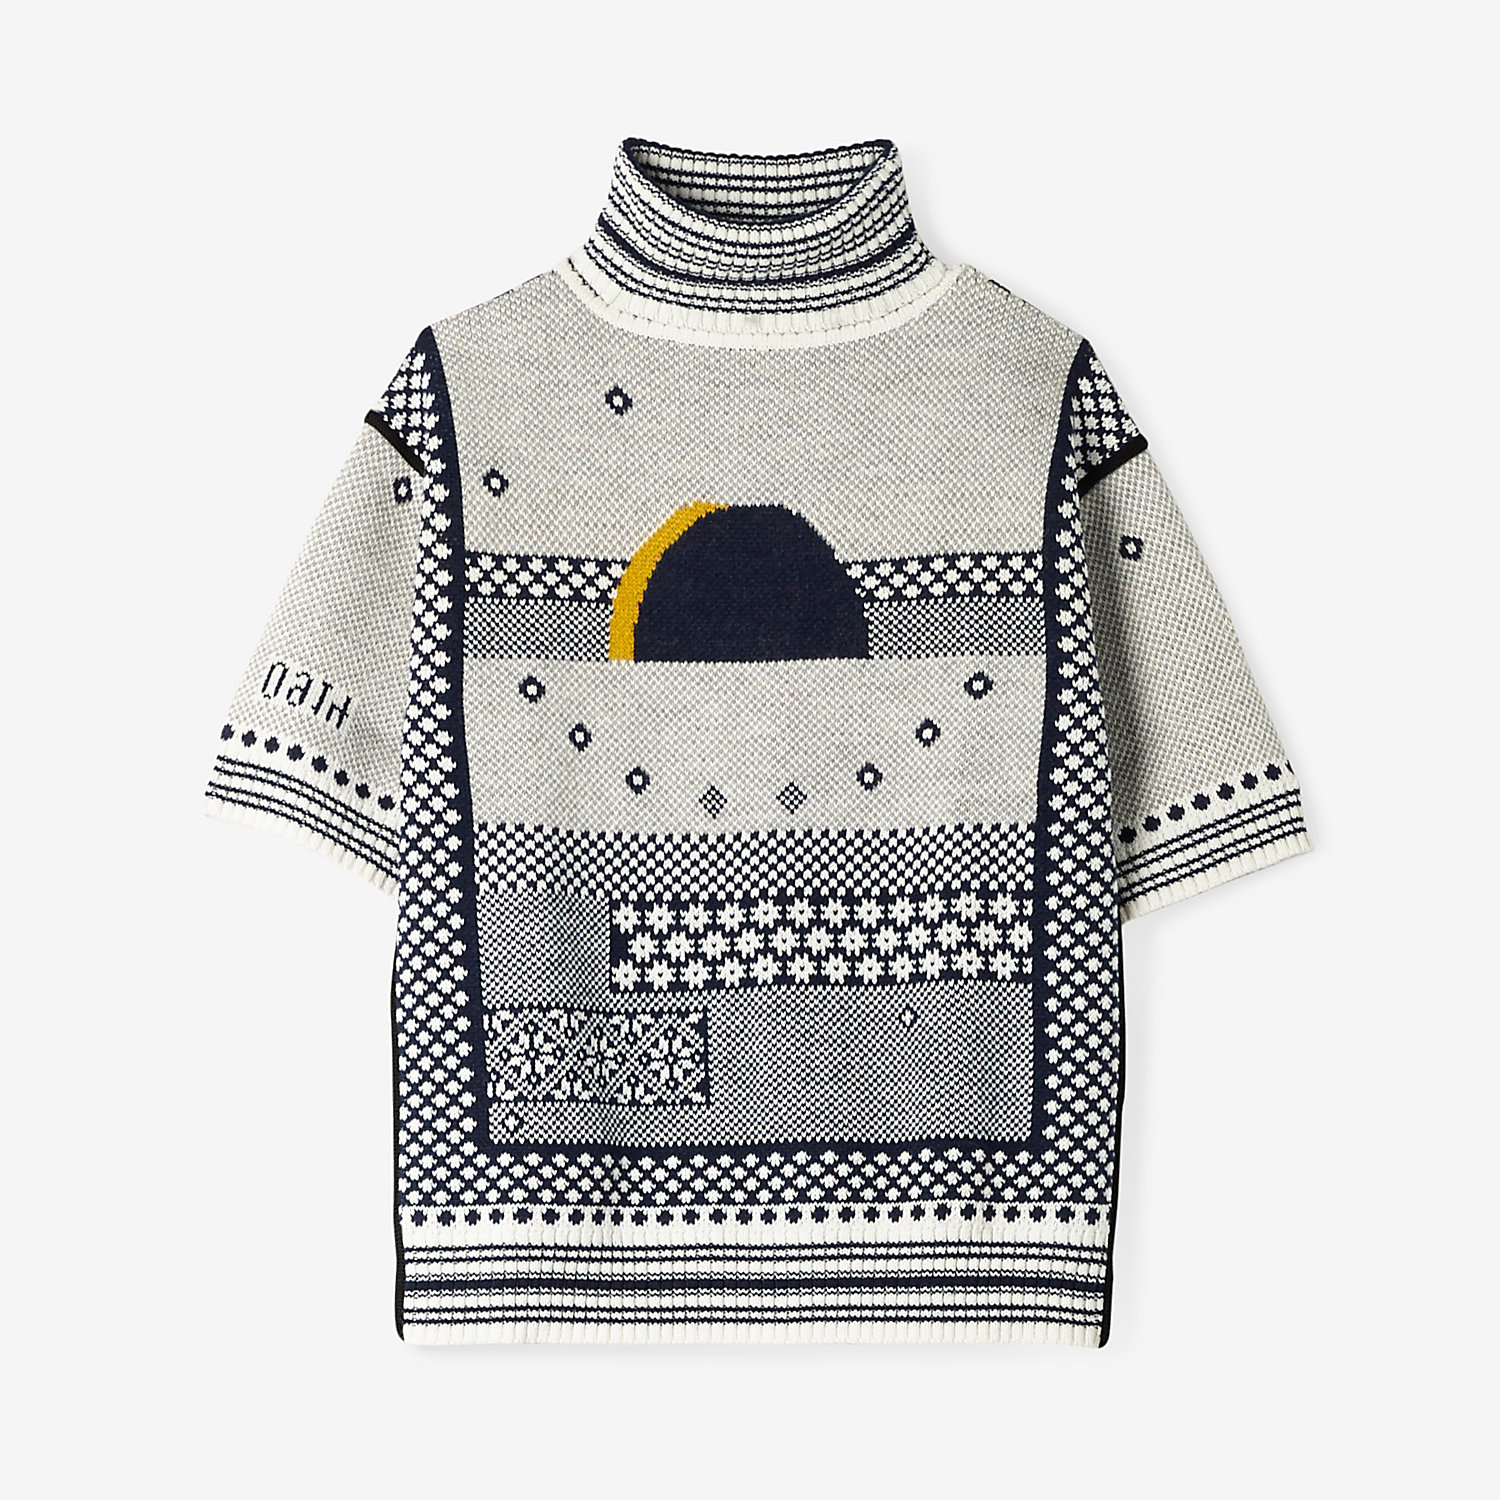 INSTARSIA FOLK KNIT TURTLENECK